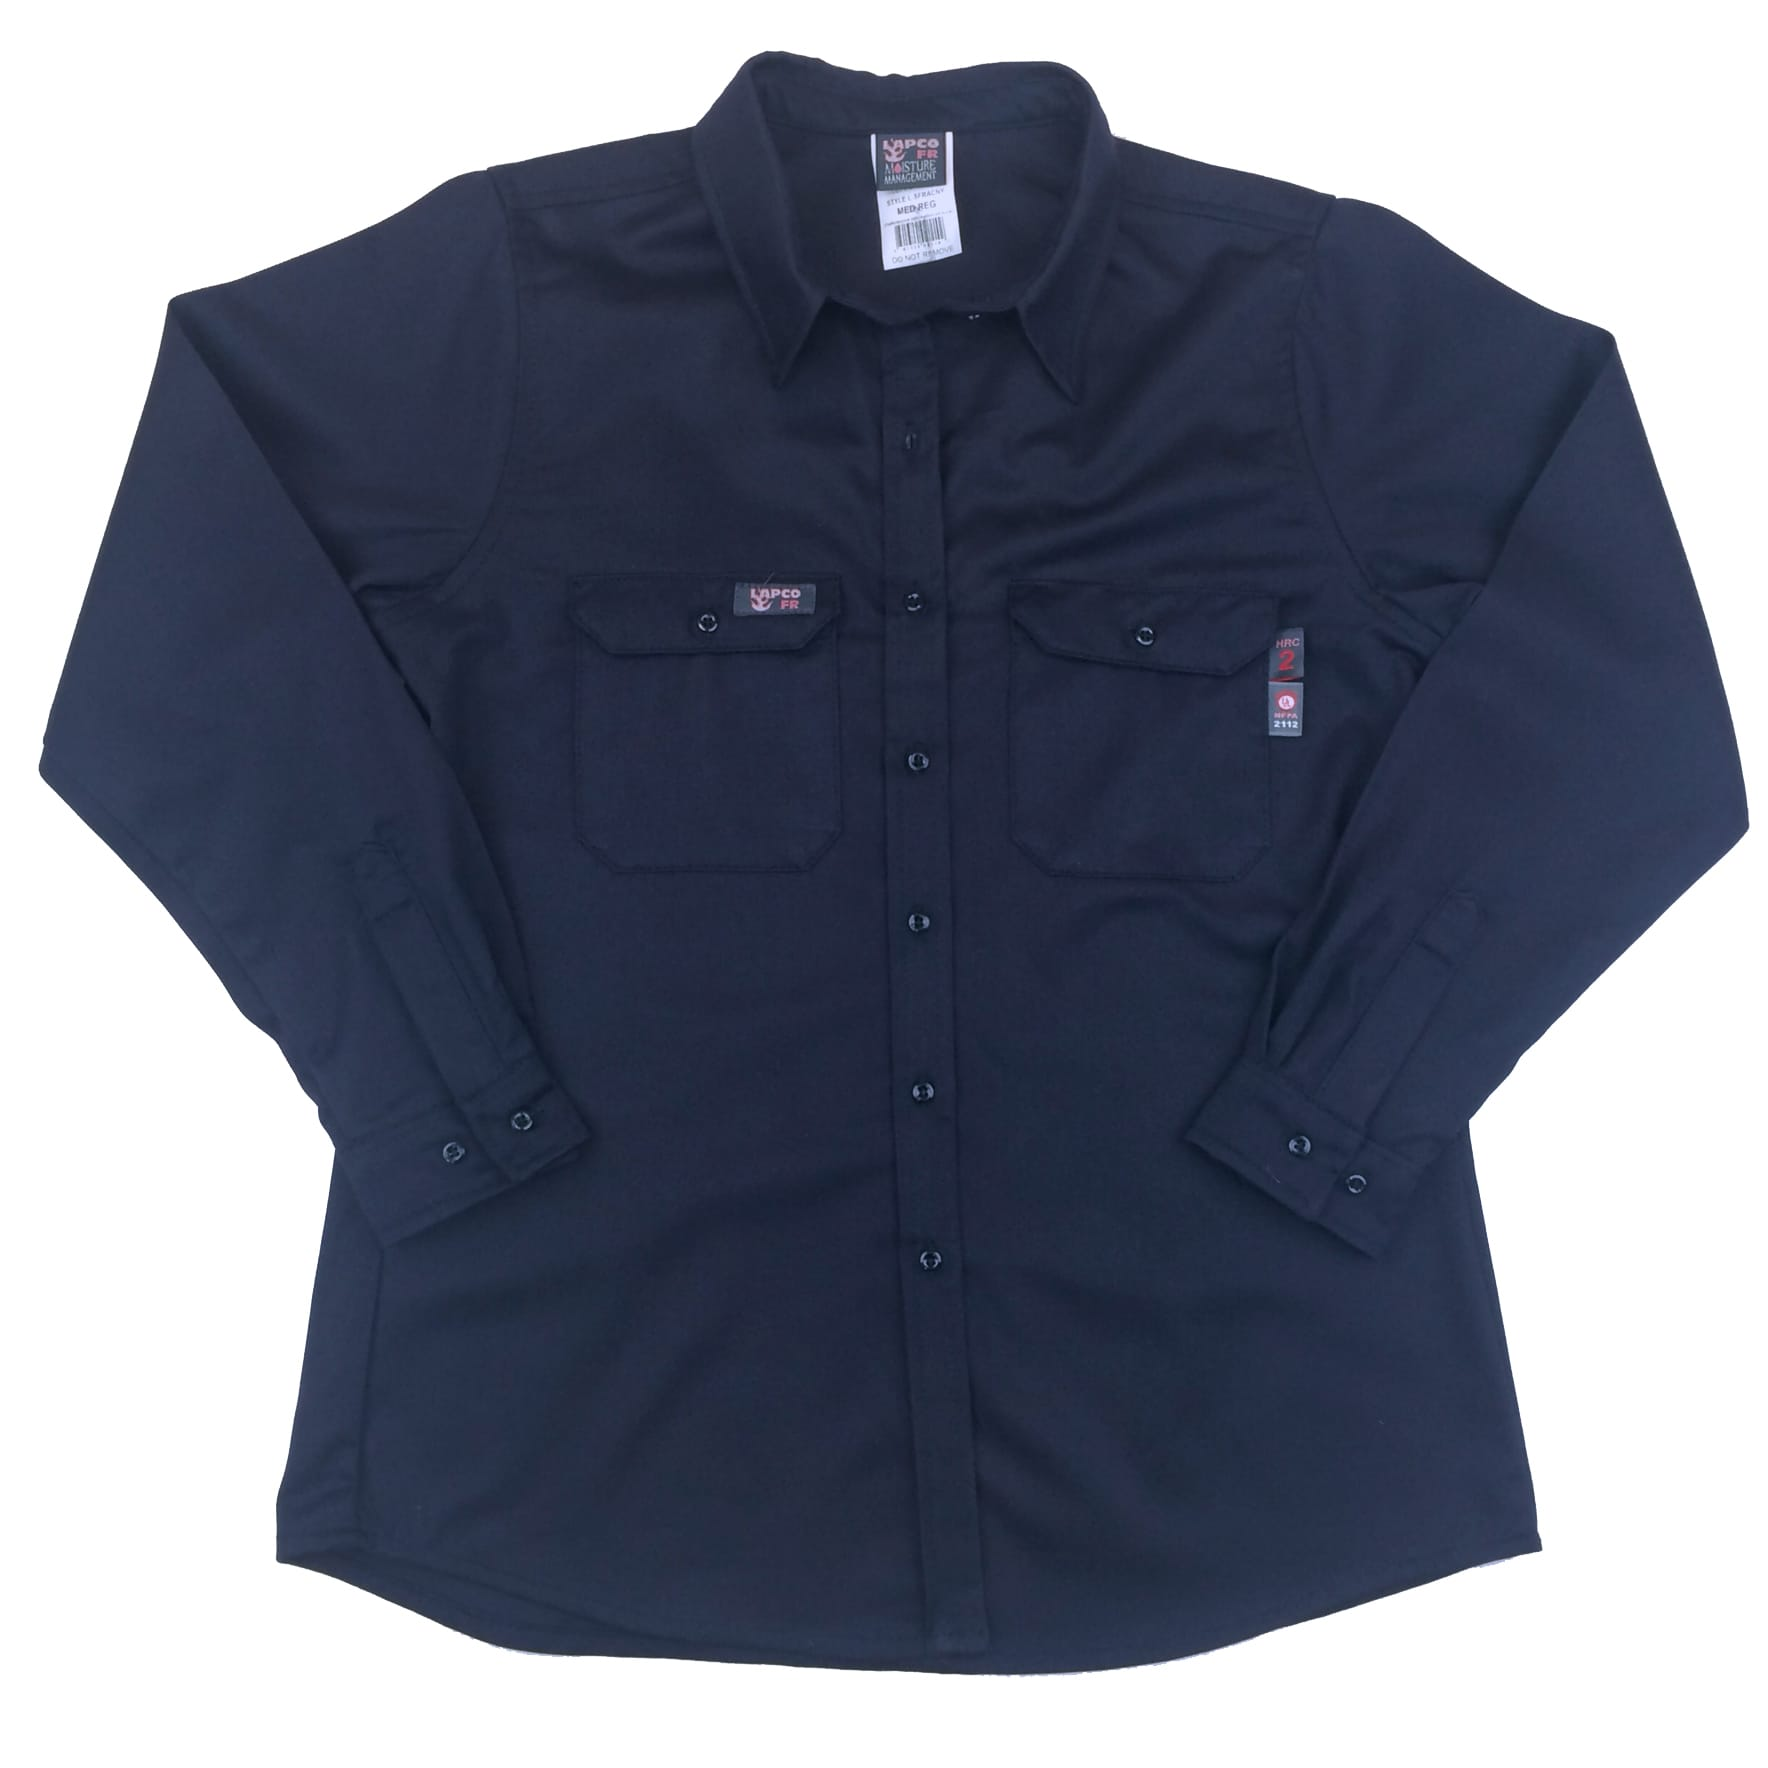 Lapco Women's FR Navy Advanced Comfort Uniform Shirt lapco fr,lapco fr clothing,lapco flame resistant,lapco fire resistant,lapco flame resistant shirt,lapco flame resistant womens shirt,lapco flame retardant womens shirt,lapco fr womens shirt,lapco fr ladies shirt,lapco fr ppe,lapco arc rated clothing,lapco hrc clothing,lapco fire resistant womens shirt,lapco fire resitant ladies shirt,lapco fire retardant womens shirt,lapco fire resistant ladies shirt,lapco fire resistant womens shirt,lapco fr ladies uniform shirt,lapco fr womens uniform shirt,lapco womens comfortable shirt,ladies fr,ladies fr clothing,ladies fr shirts,ladies fr ppe,fire retardant womens,fire retardant ladies,fire retardant ladies clothing,fire retardant womens clothing,ladies arc rated clothing,ladies hrc 2 clothes